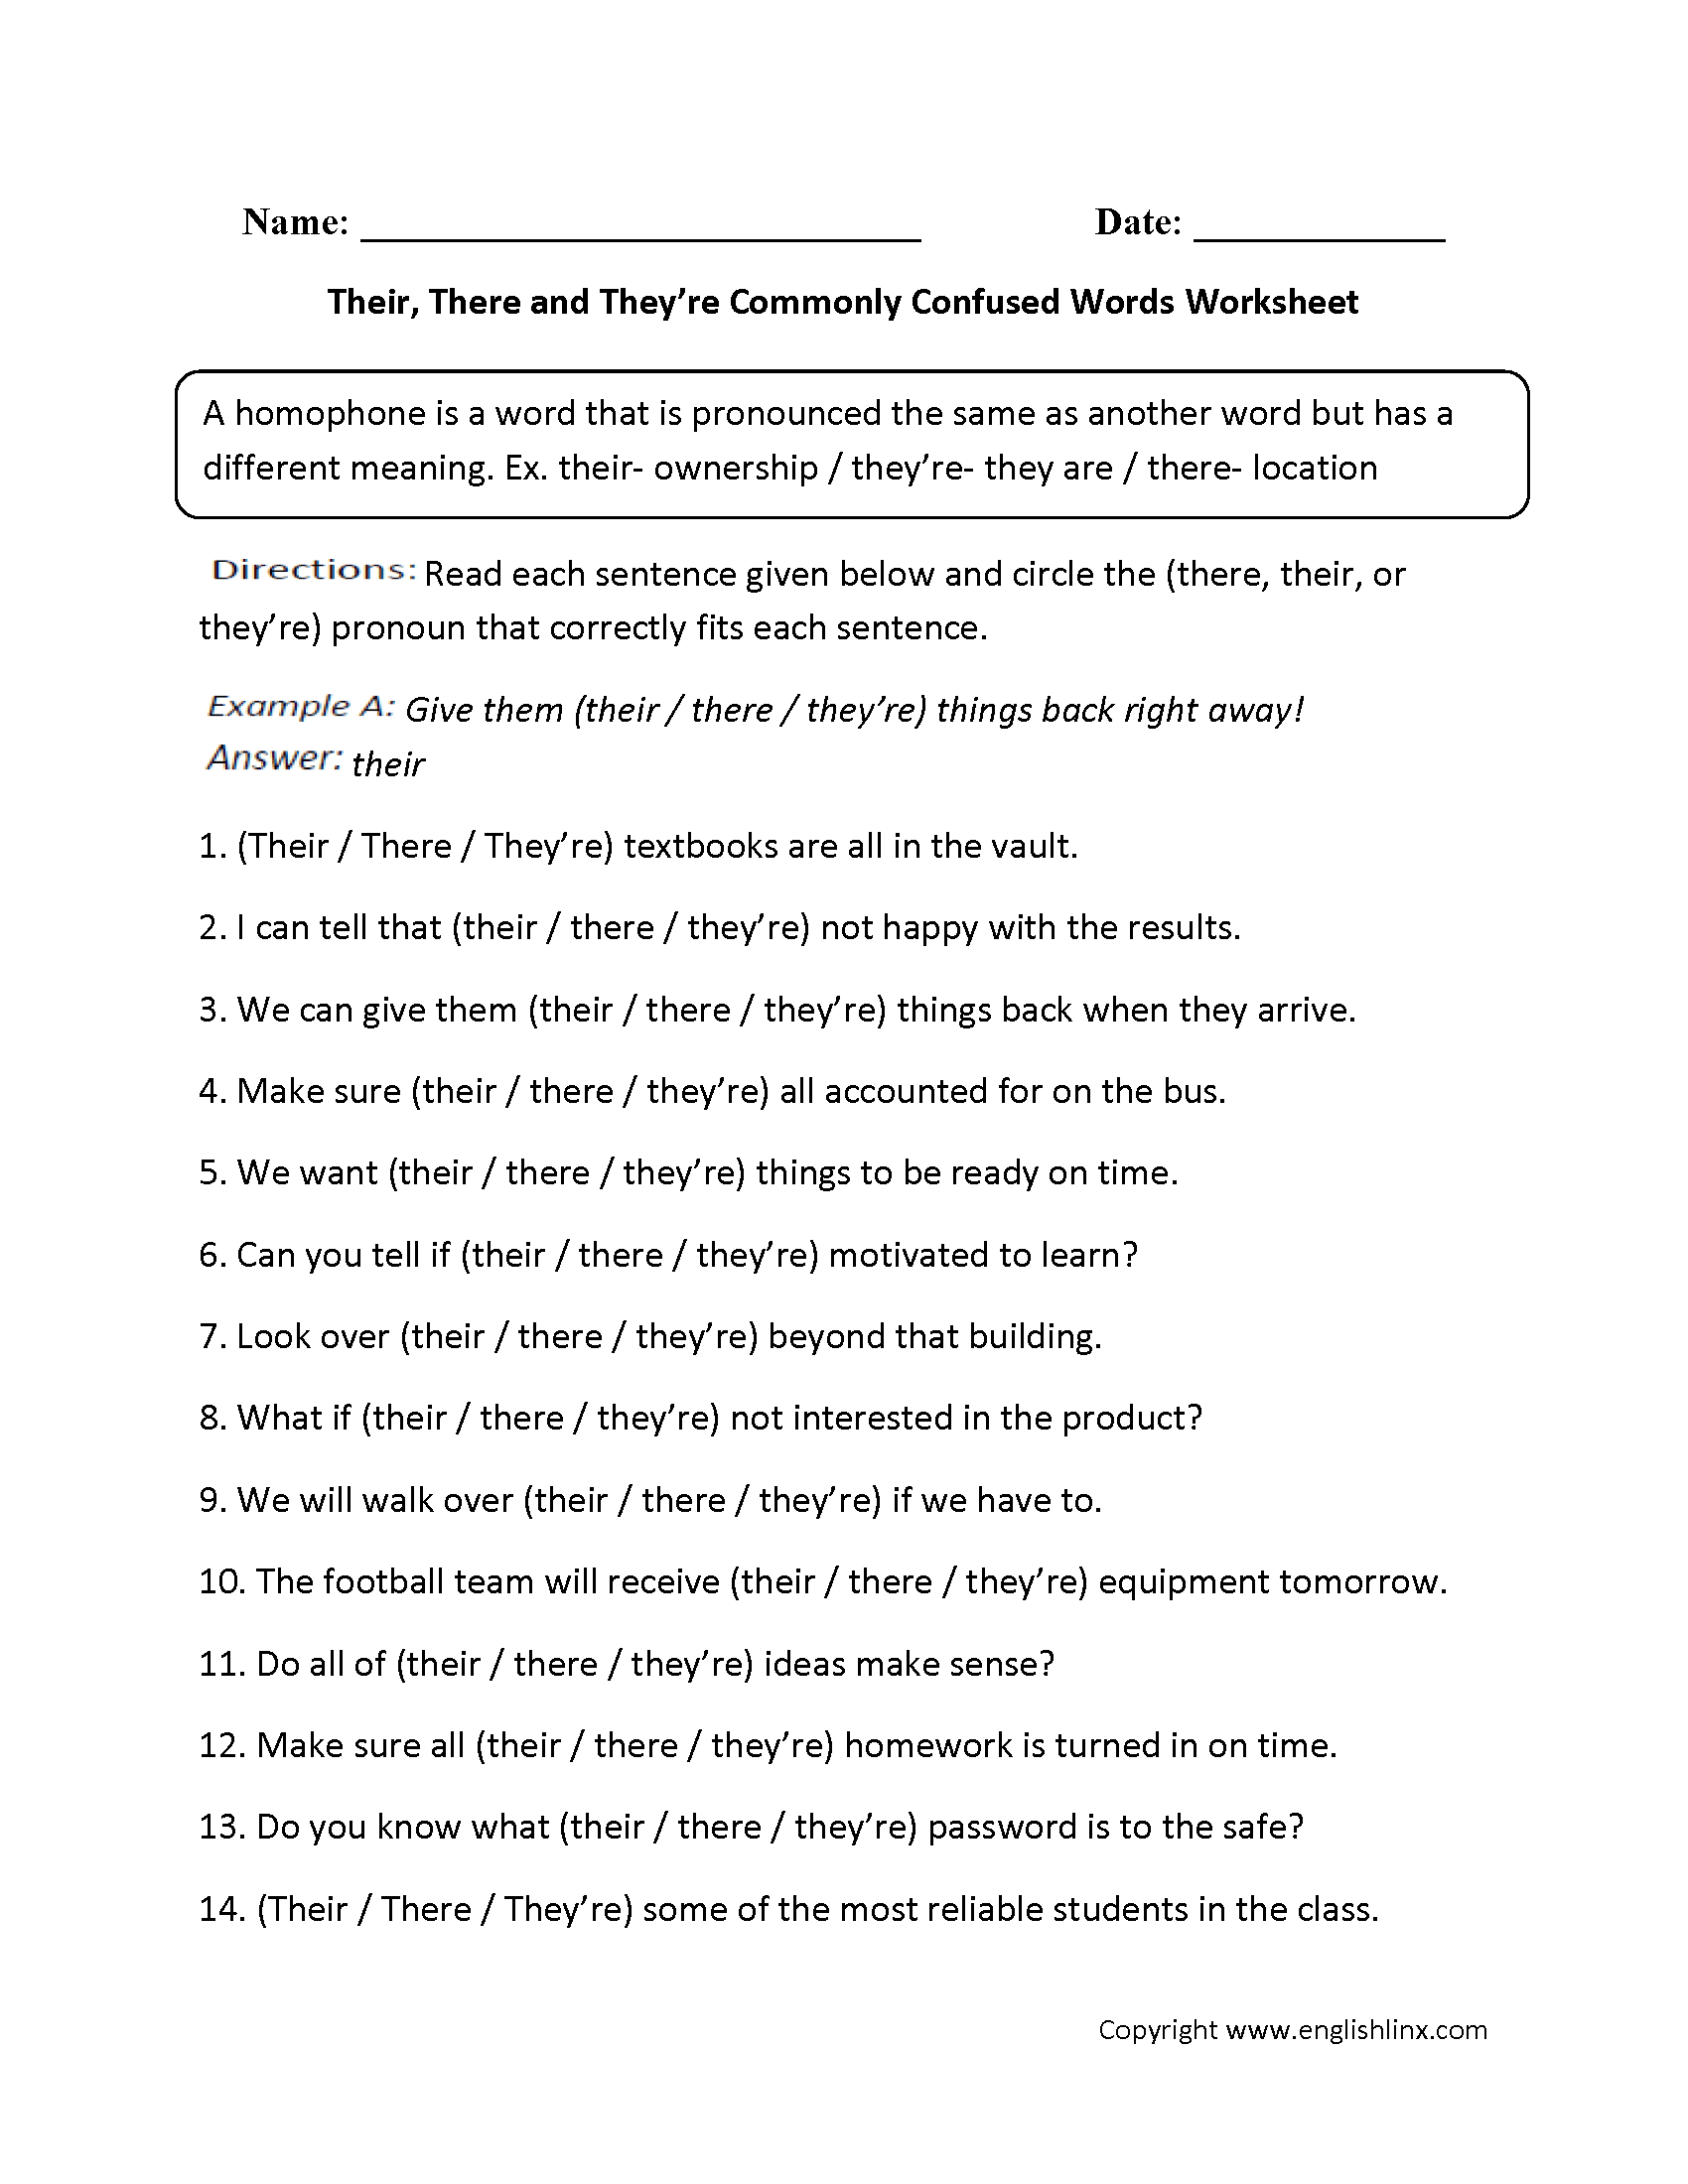 worksheet Homophones Worksheet 6th Grade their there theyre commonly confused words worksheets this fun homophones worksheet directs the student to write which version of or best completes each sentence